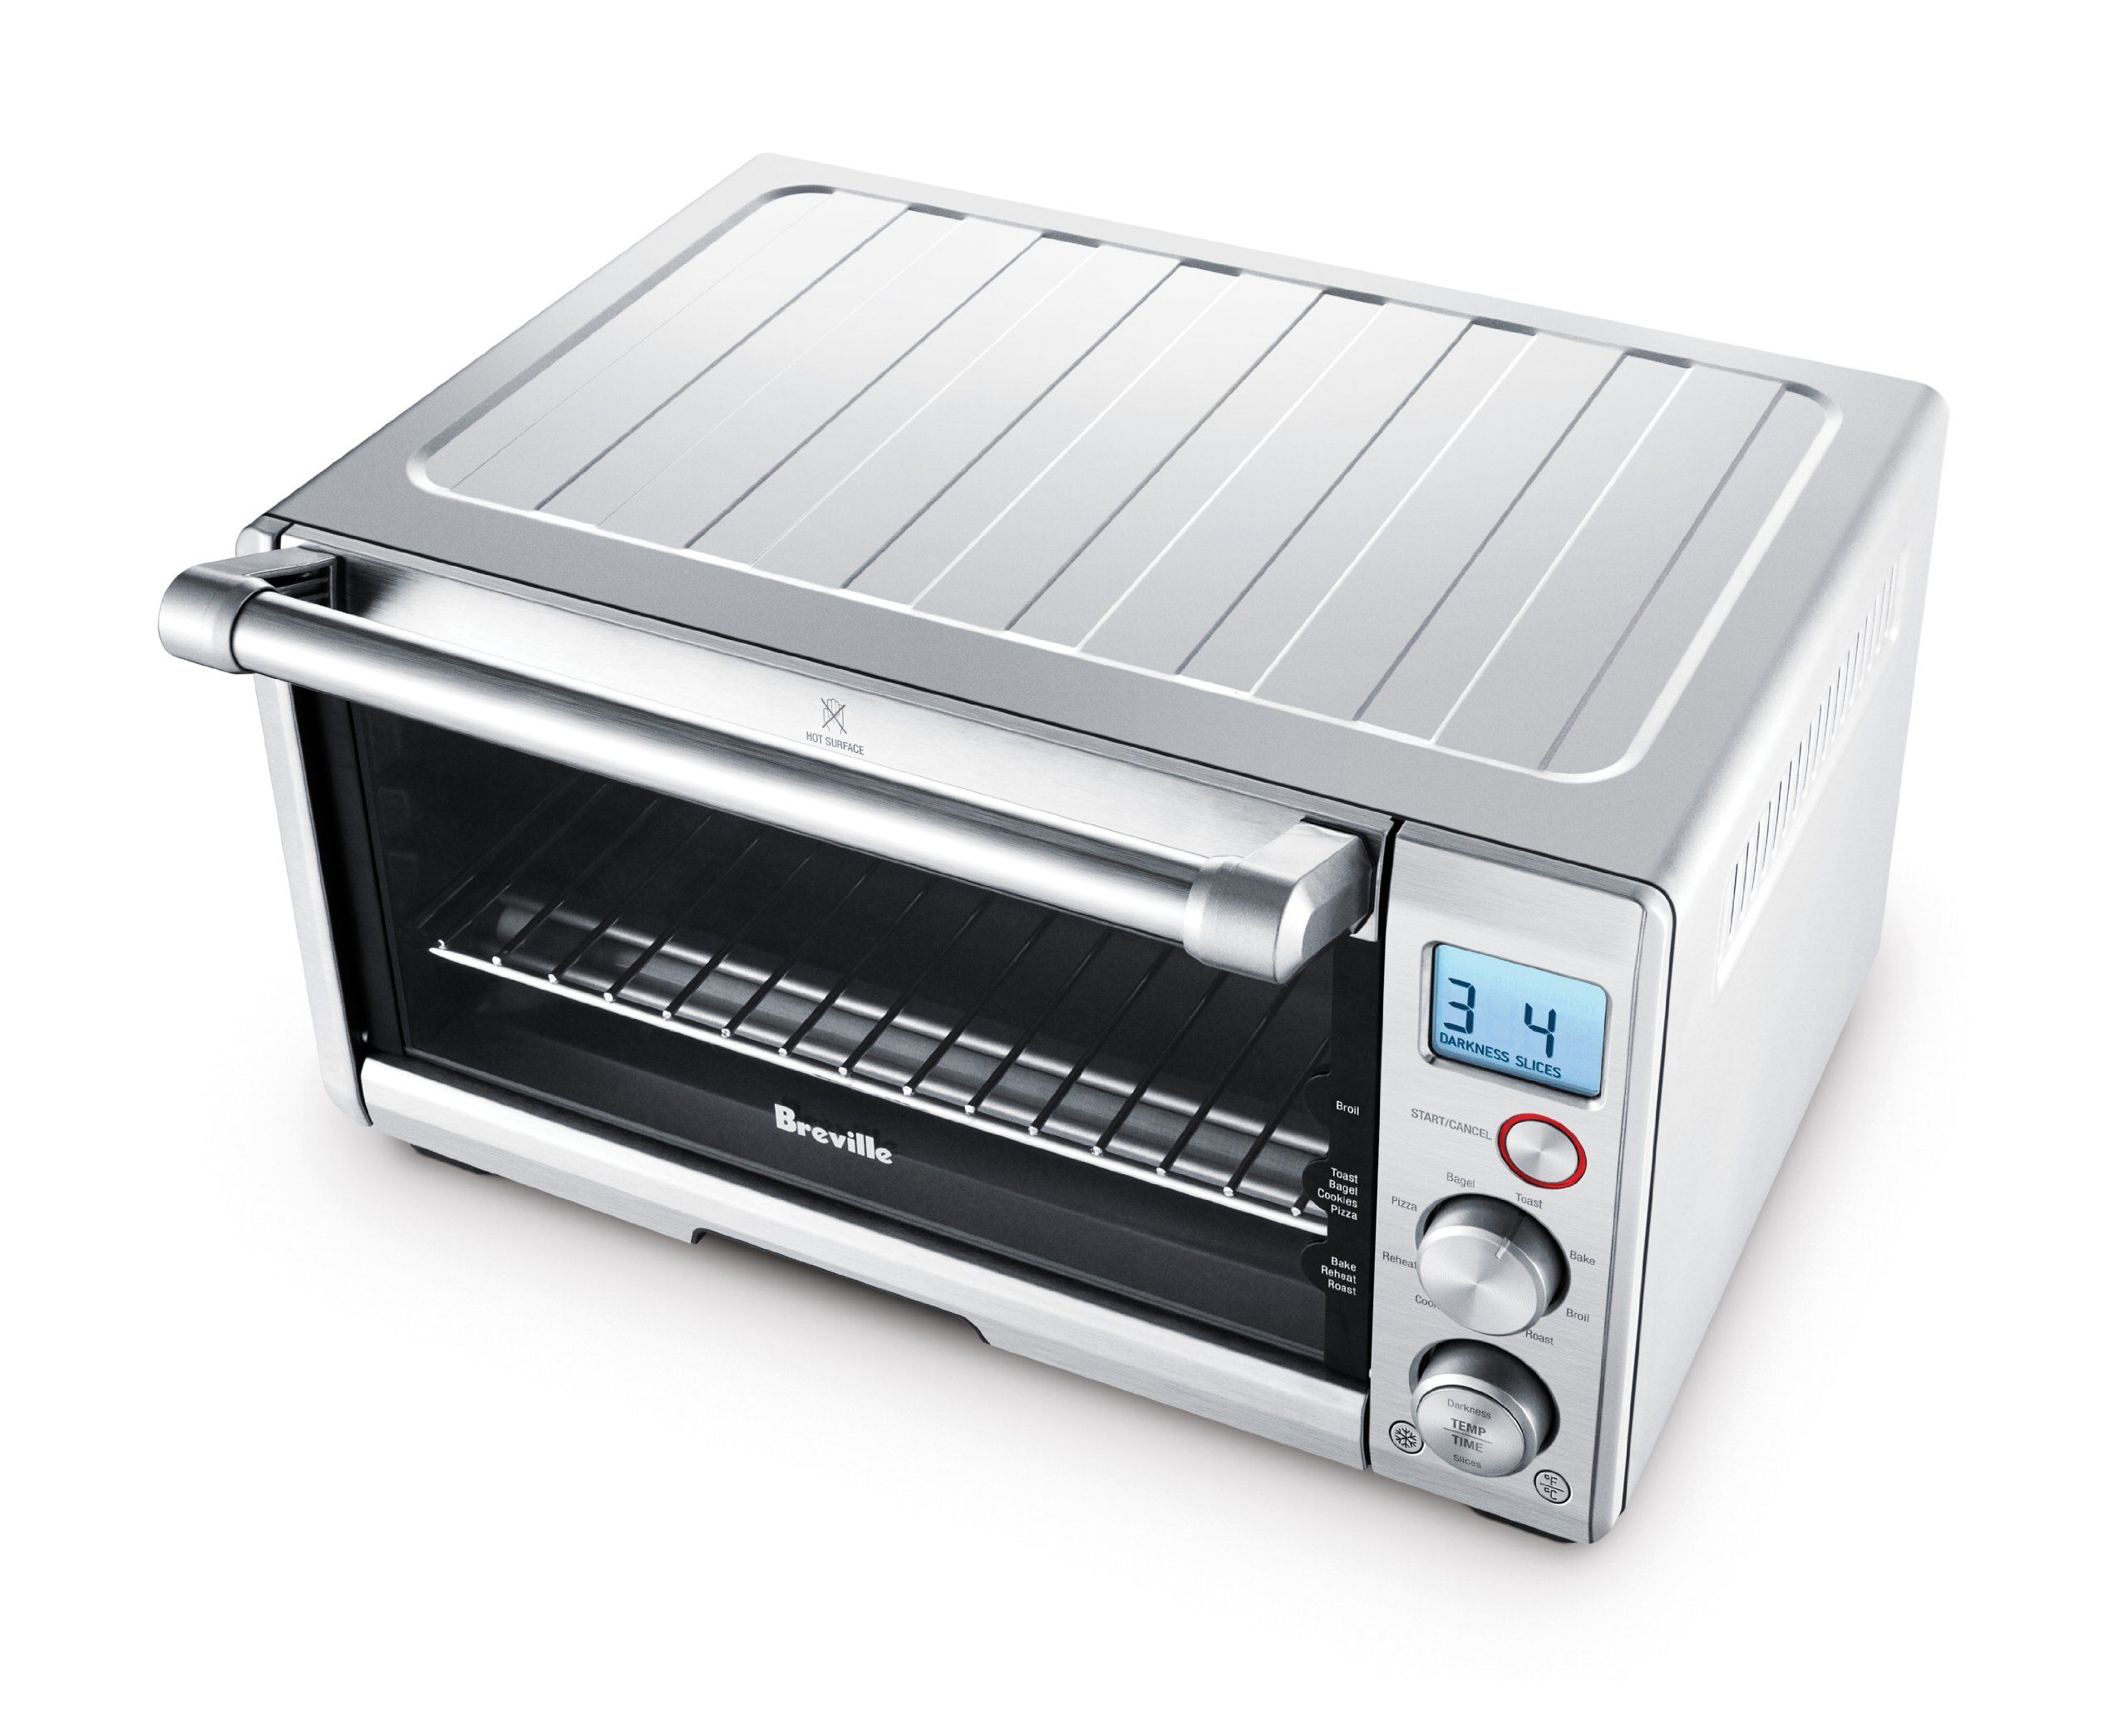 Breville Bov650xl The Compact Smart Oven Stainless Steel Click